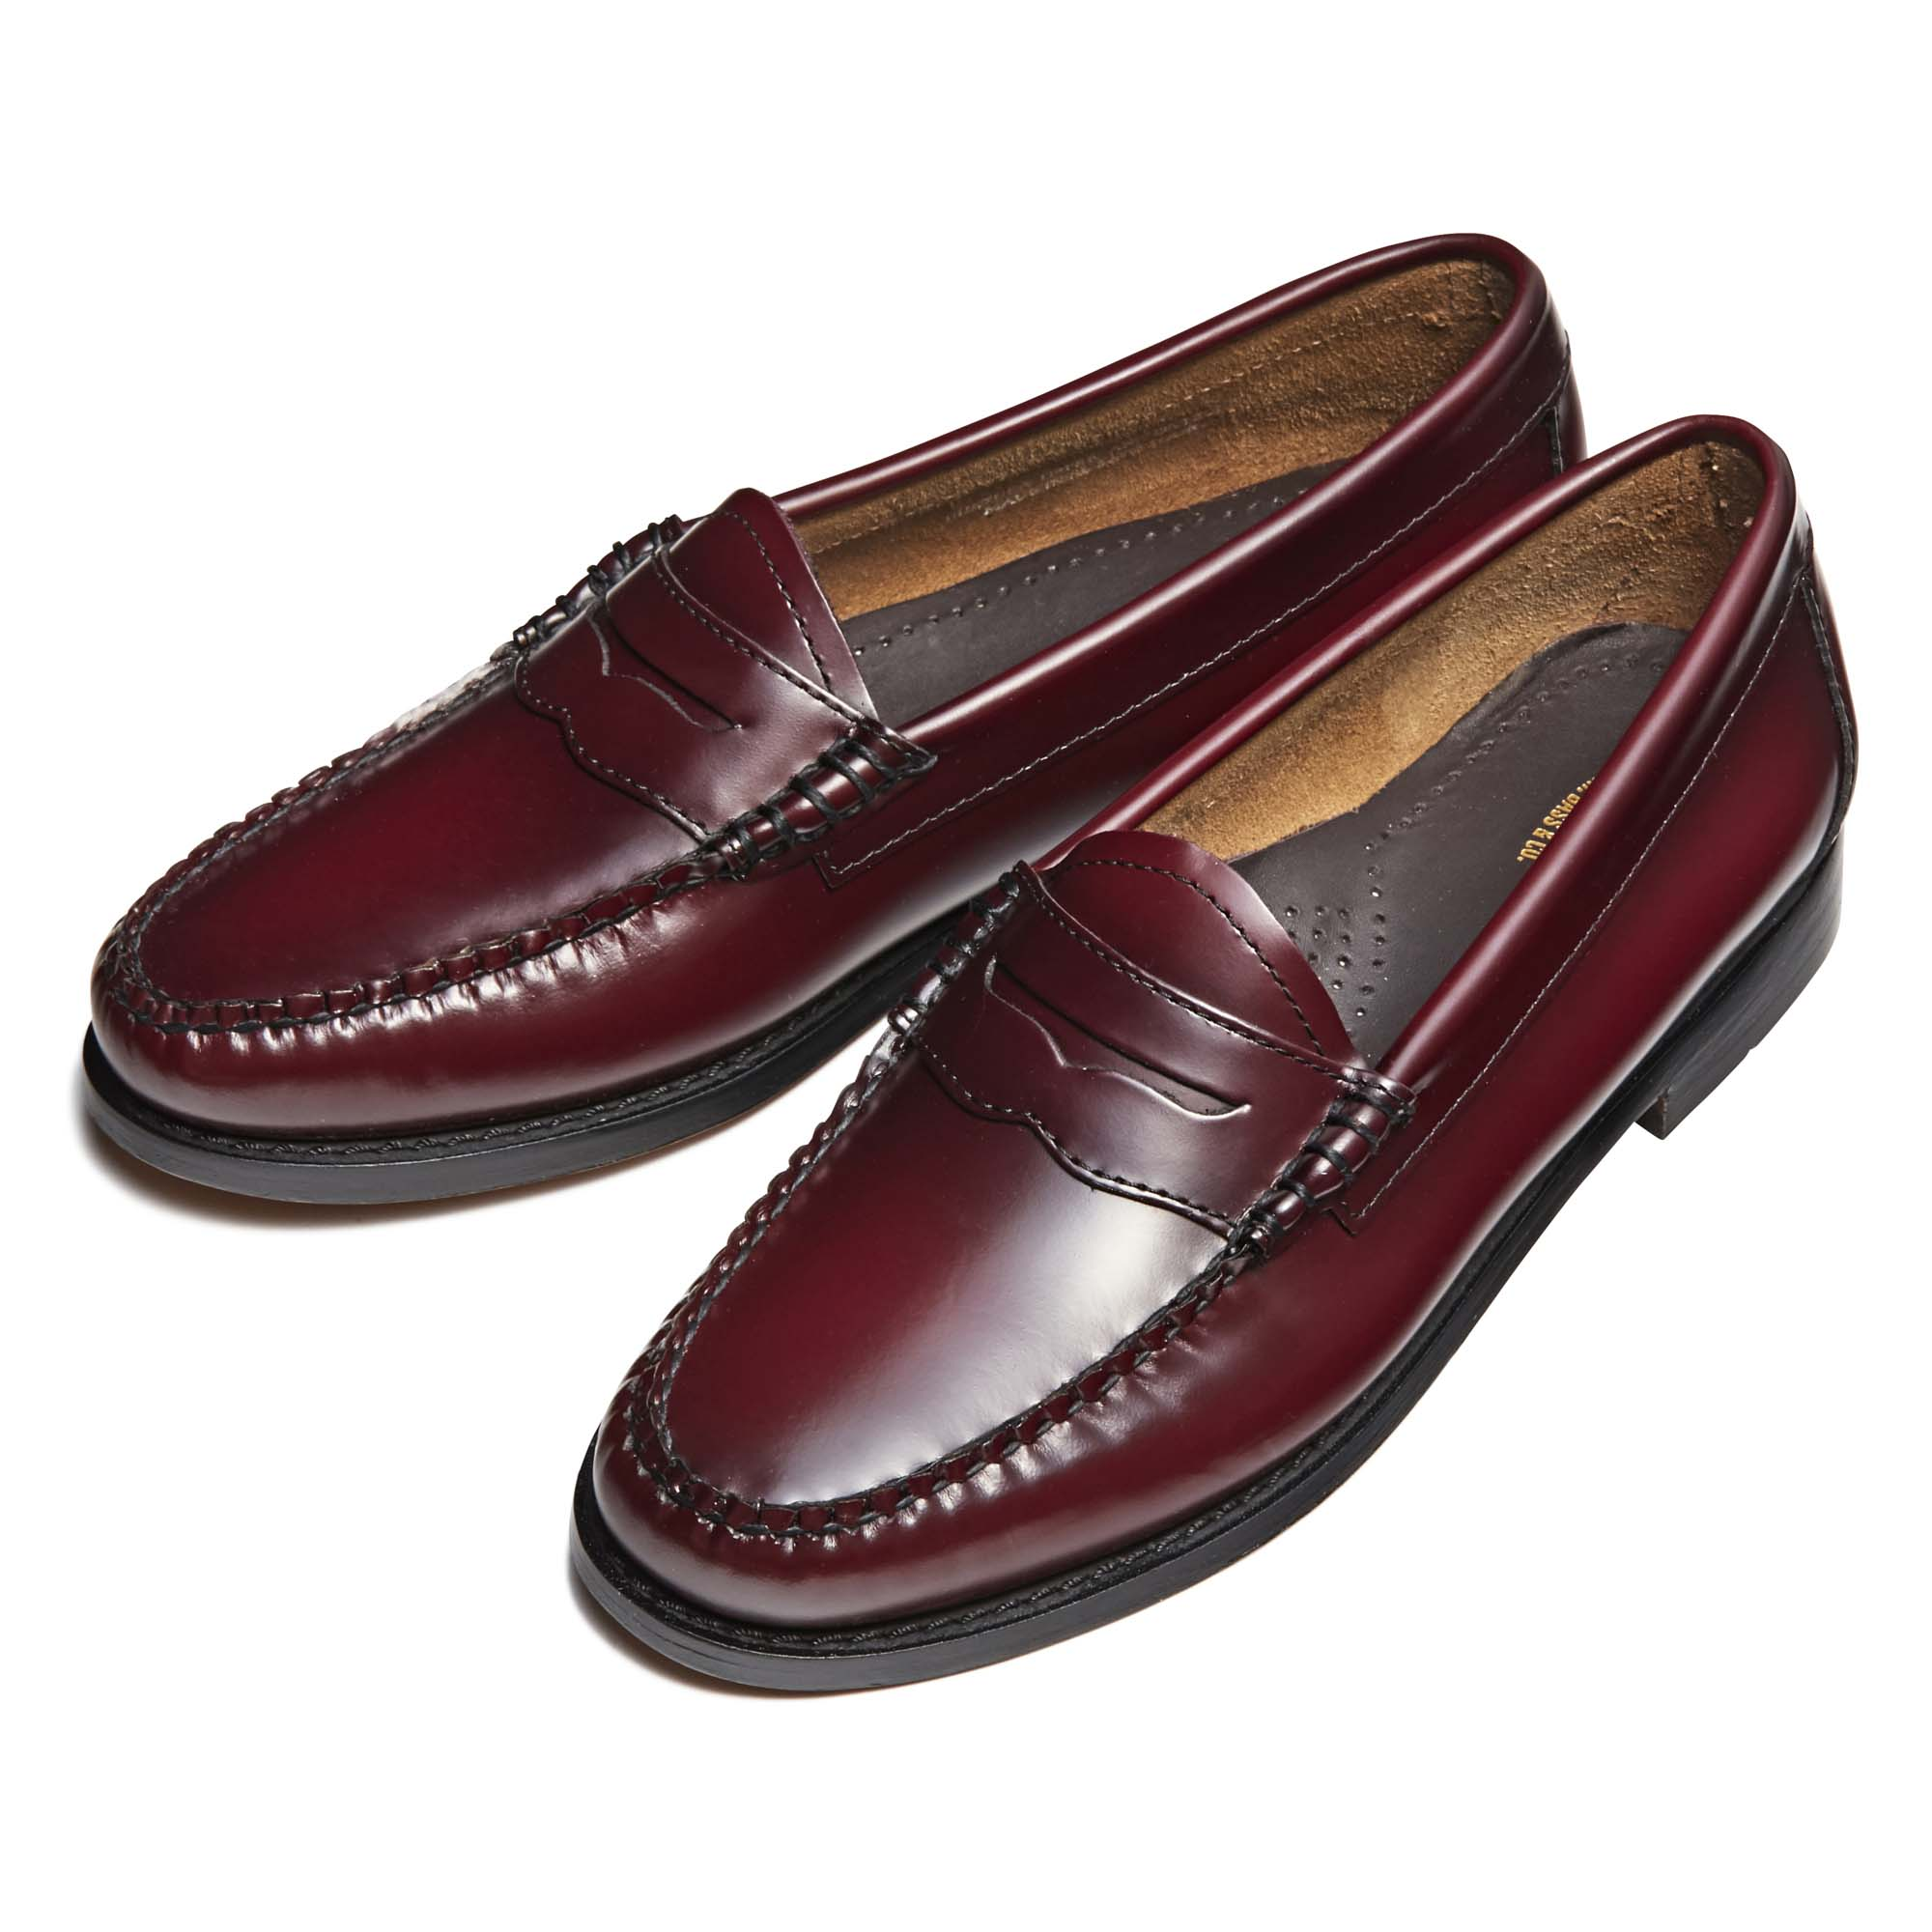 41010 / WINE (LEATHER SOLE)